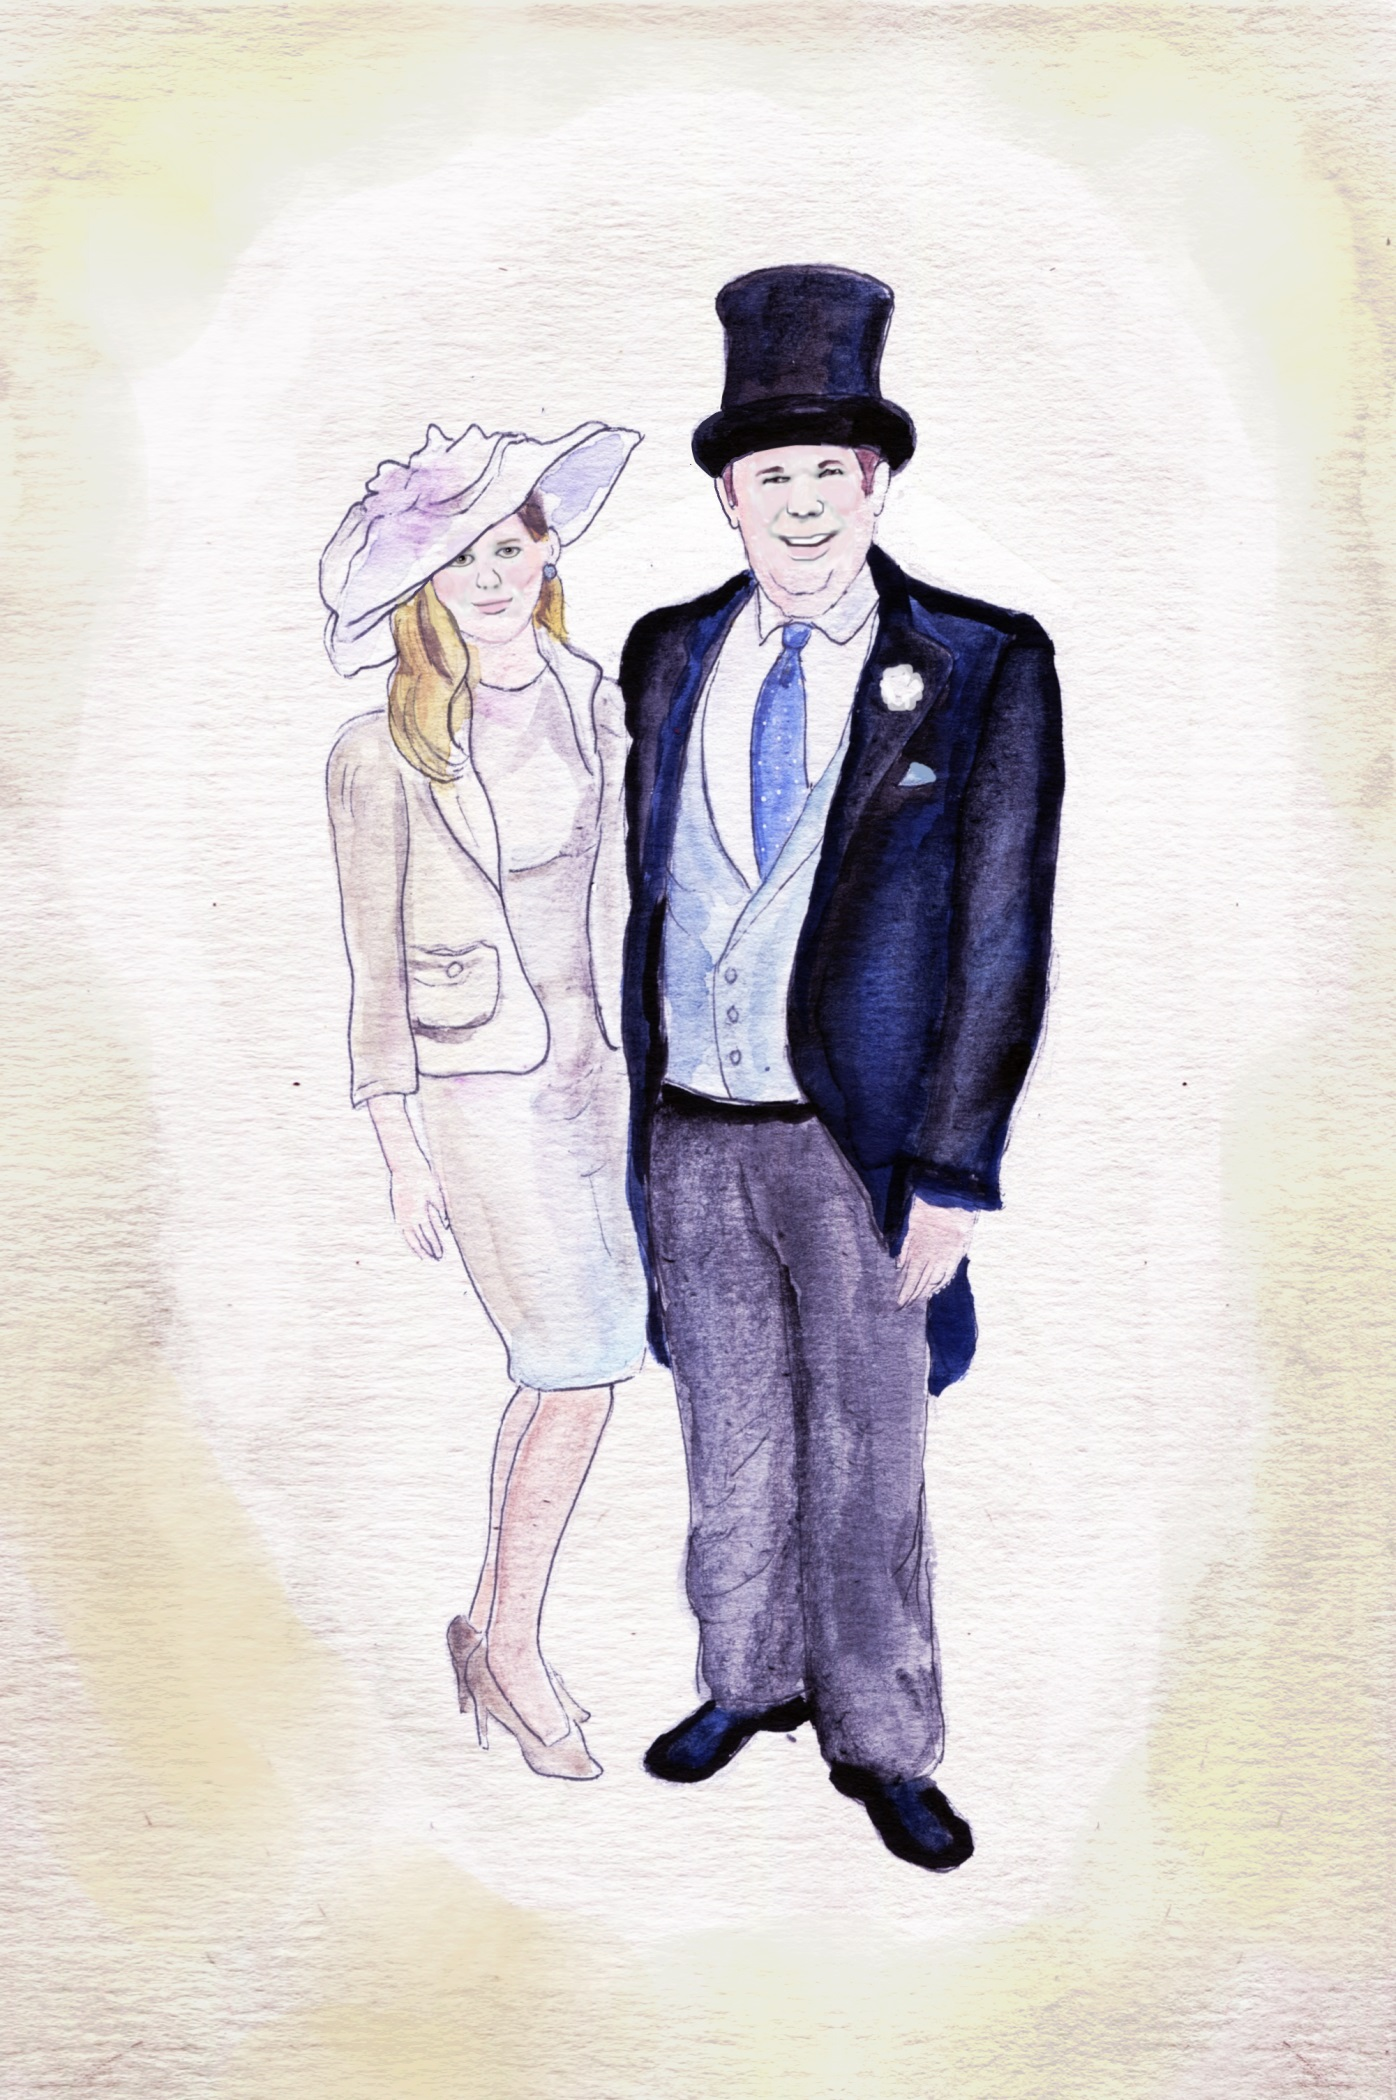 watercolorcoupledonenew2